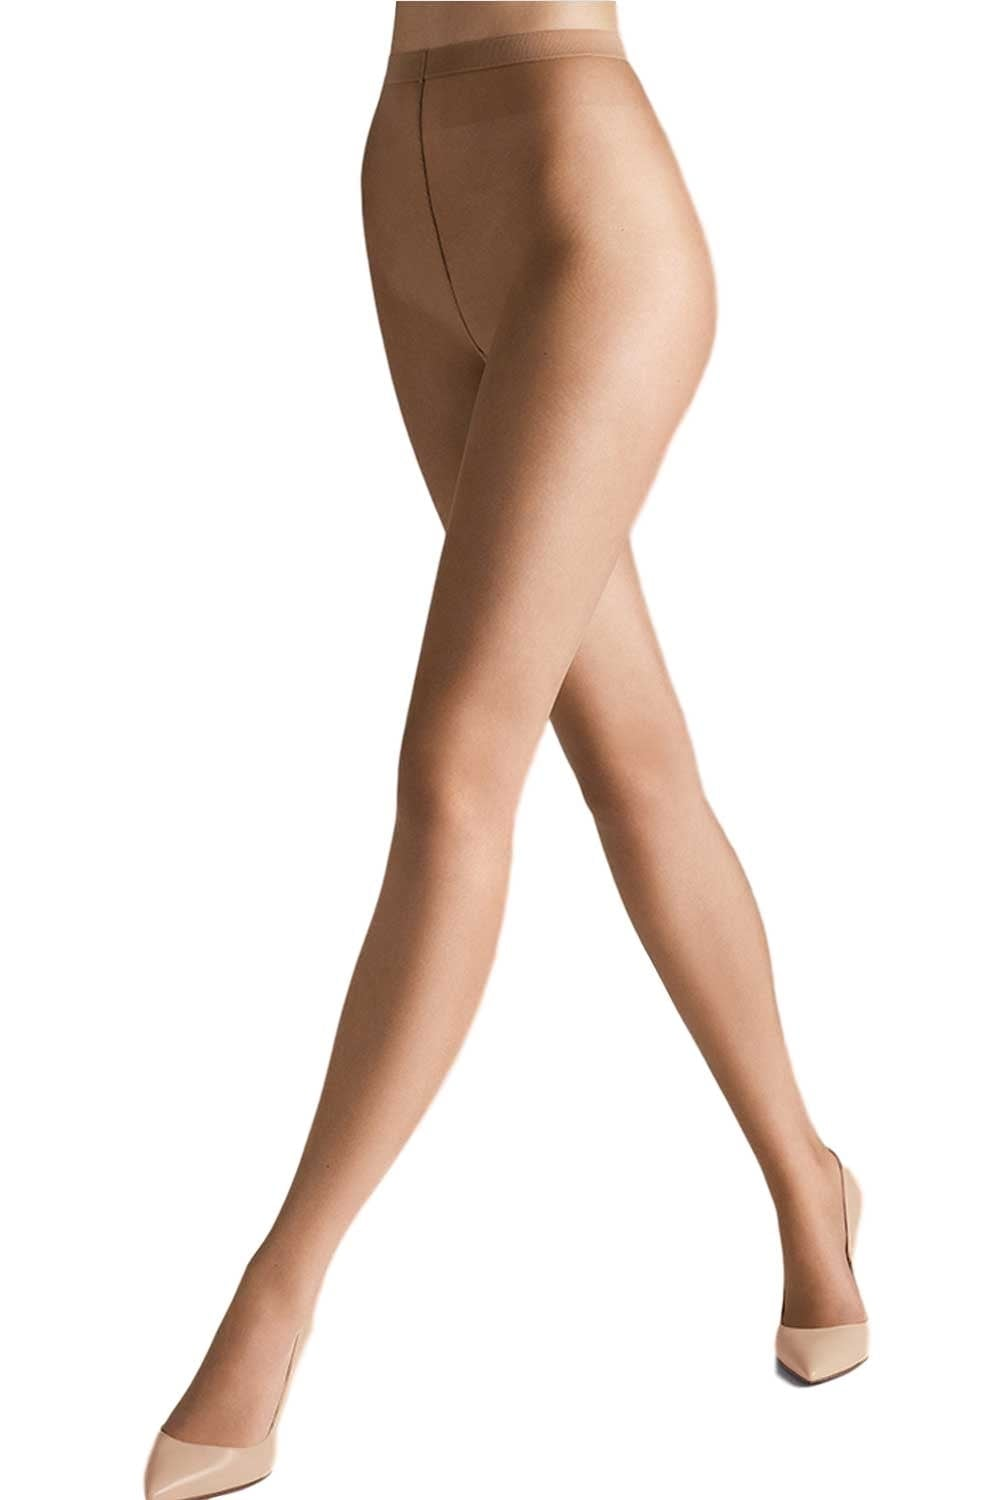 271d05fbbda Wolford at Tights Tights Tights